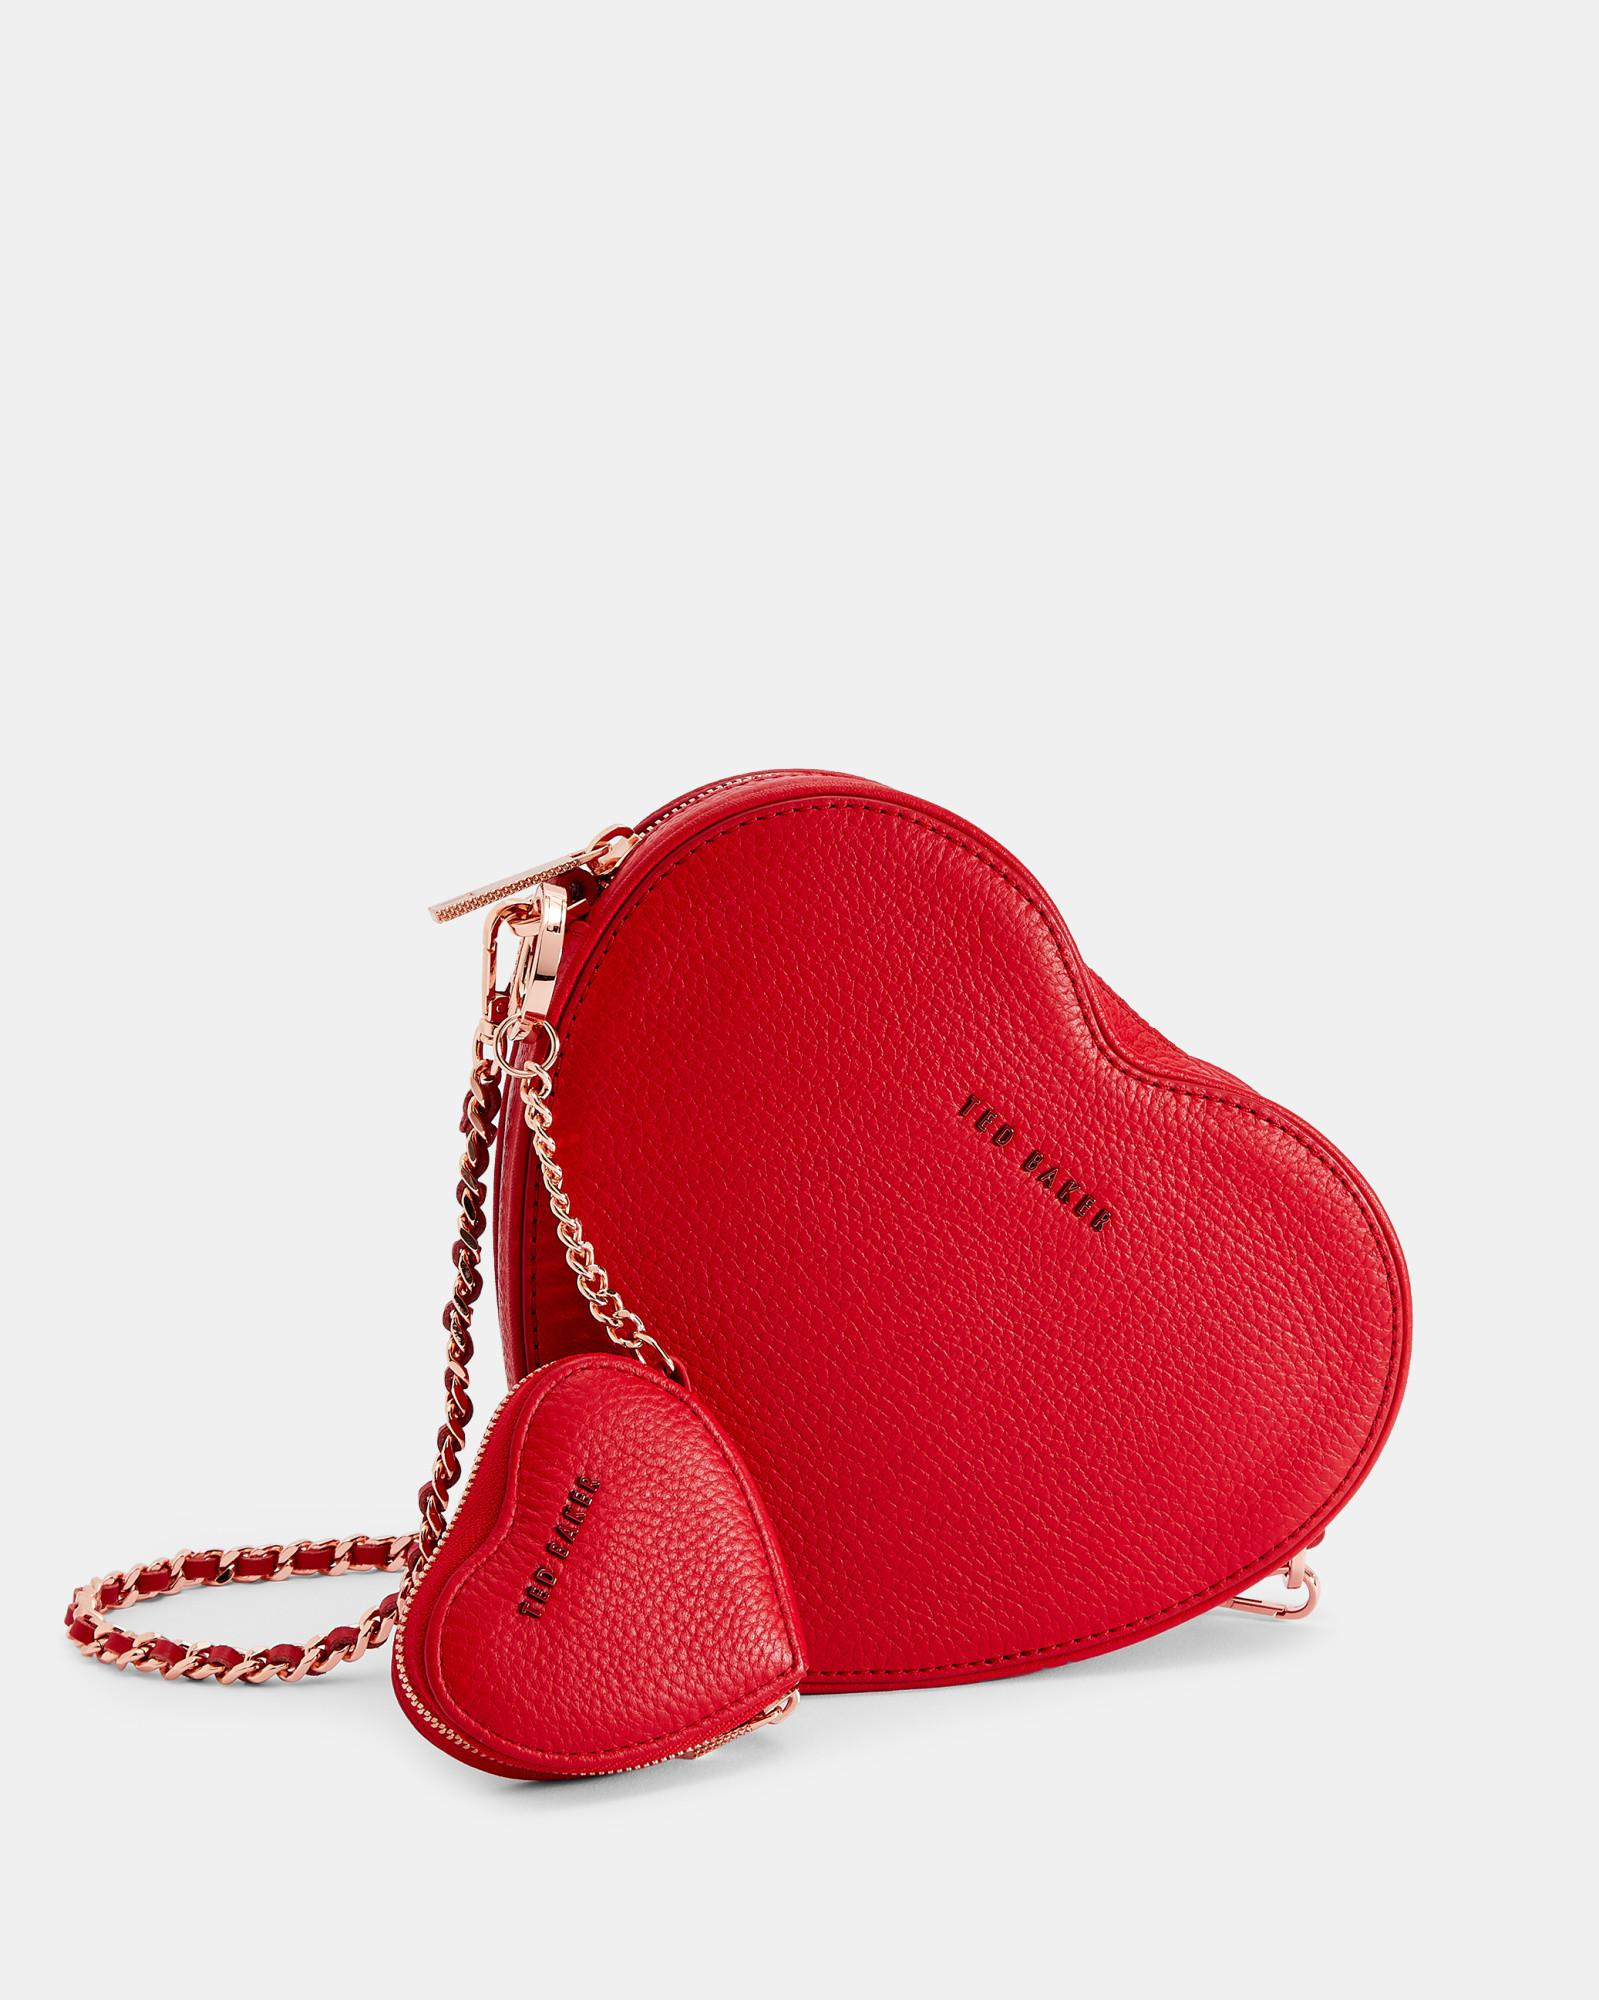 dbd3bd332 Lyst - Ted Baker Heart Leather Coin Purse Keyring in Red